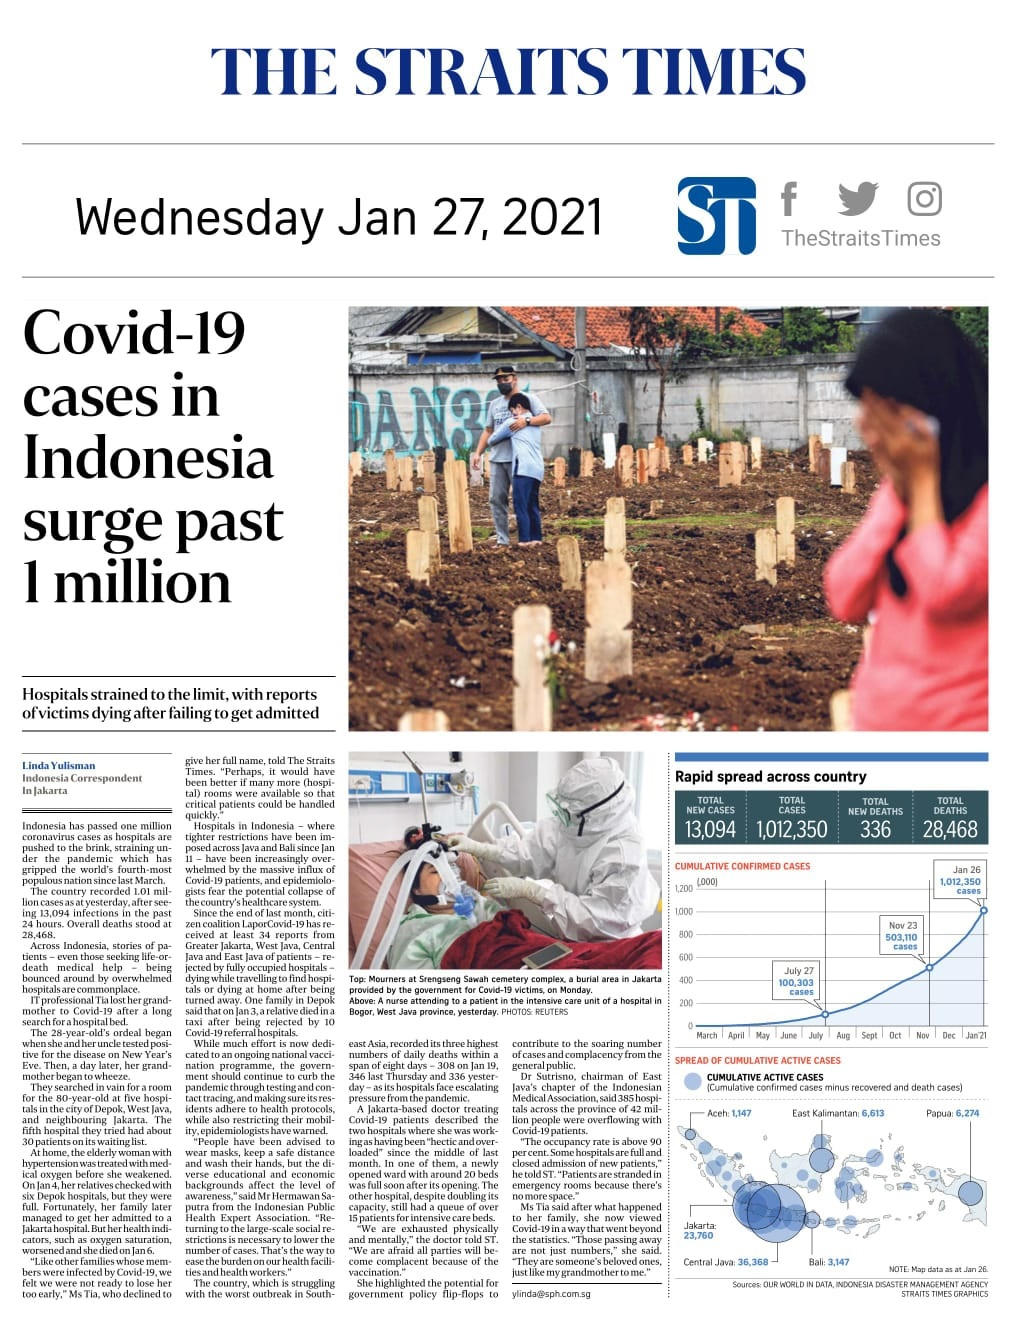 Covid-19 cases in Indonesia surge past 1 million - Published in The Straits Times January 27, 2021